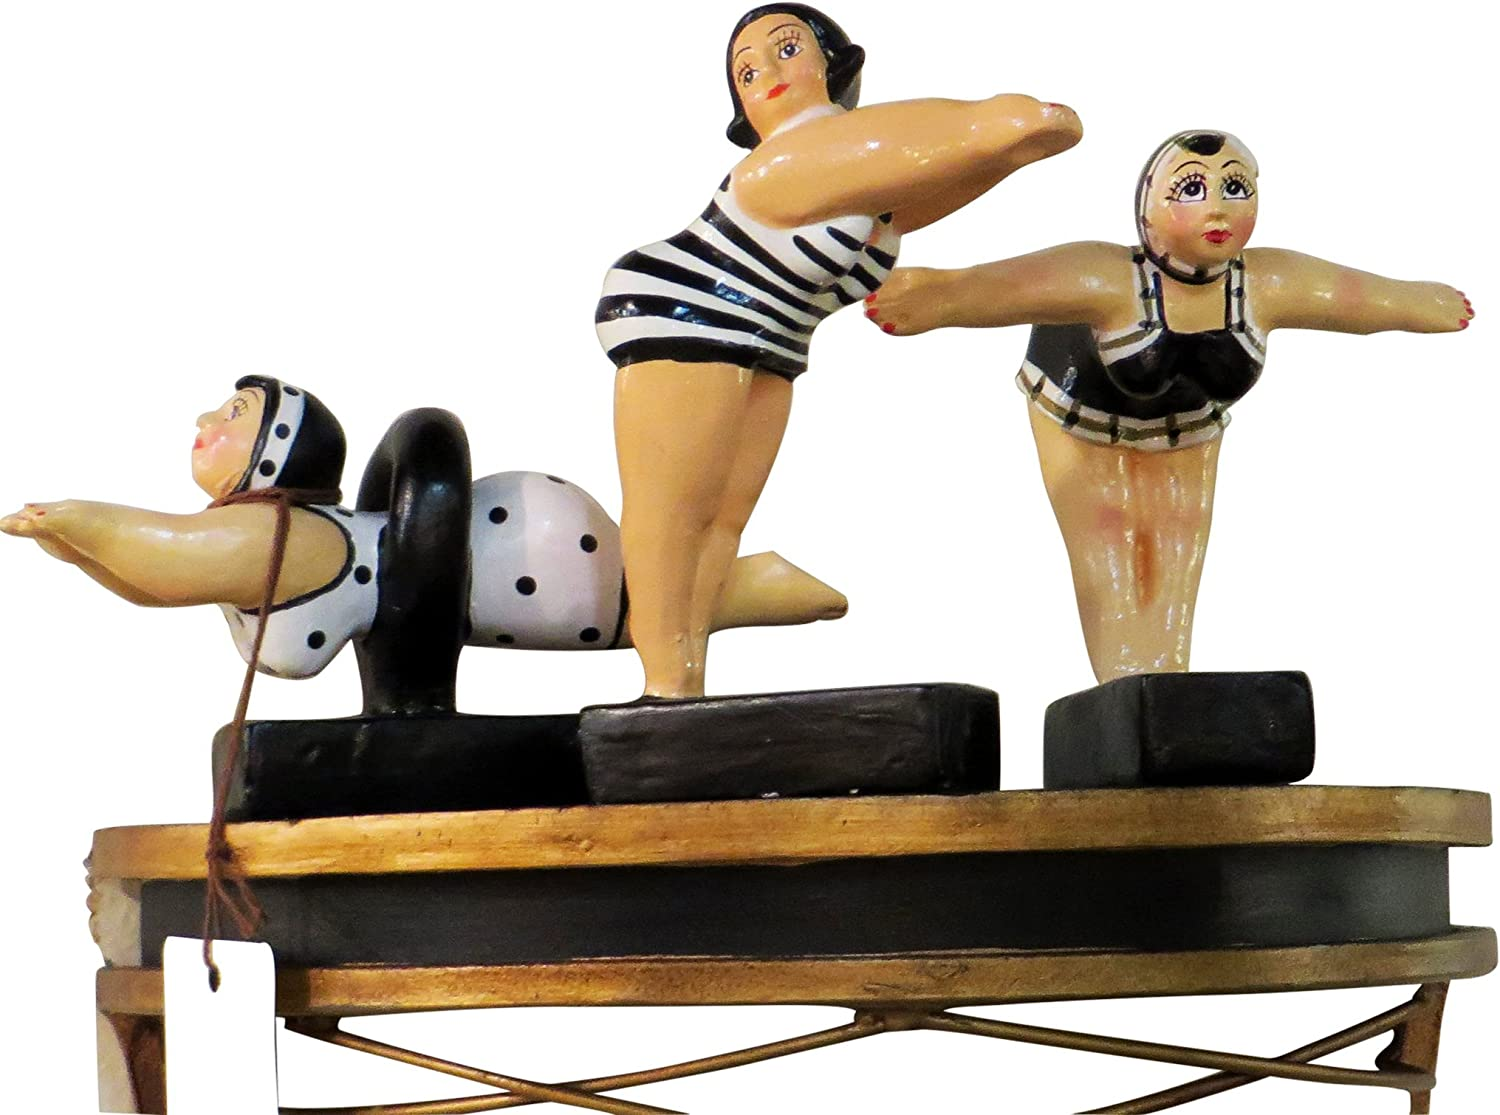 MY SWANKY HOME Whimsical Bathing Beauty Retro Swimmer Statue Set 3 | Vintage Swimsuit Woman Figurine